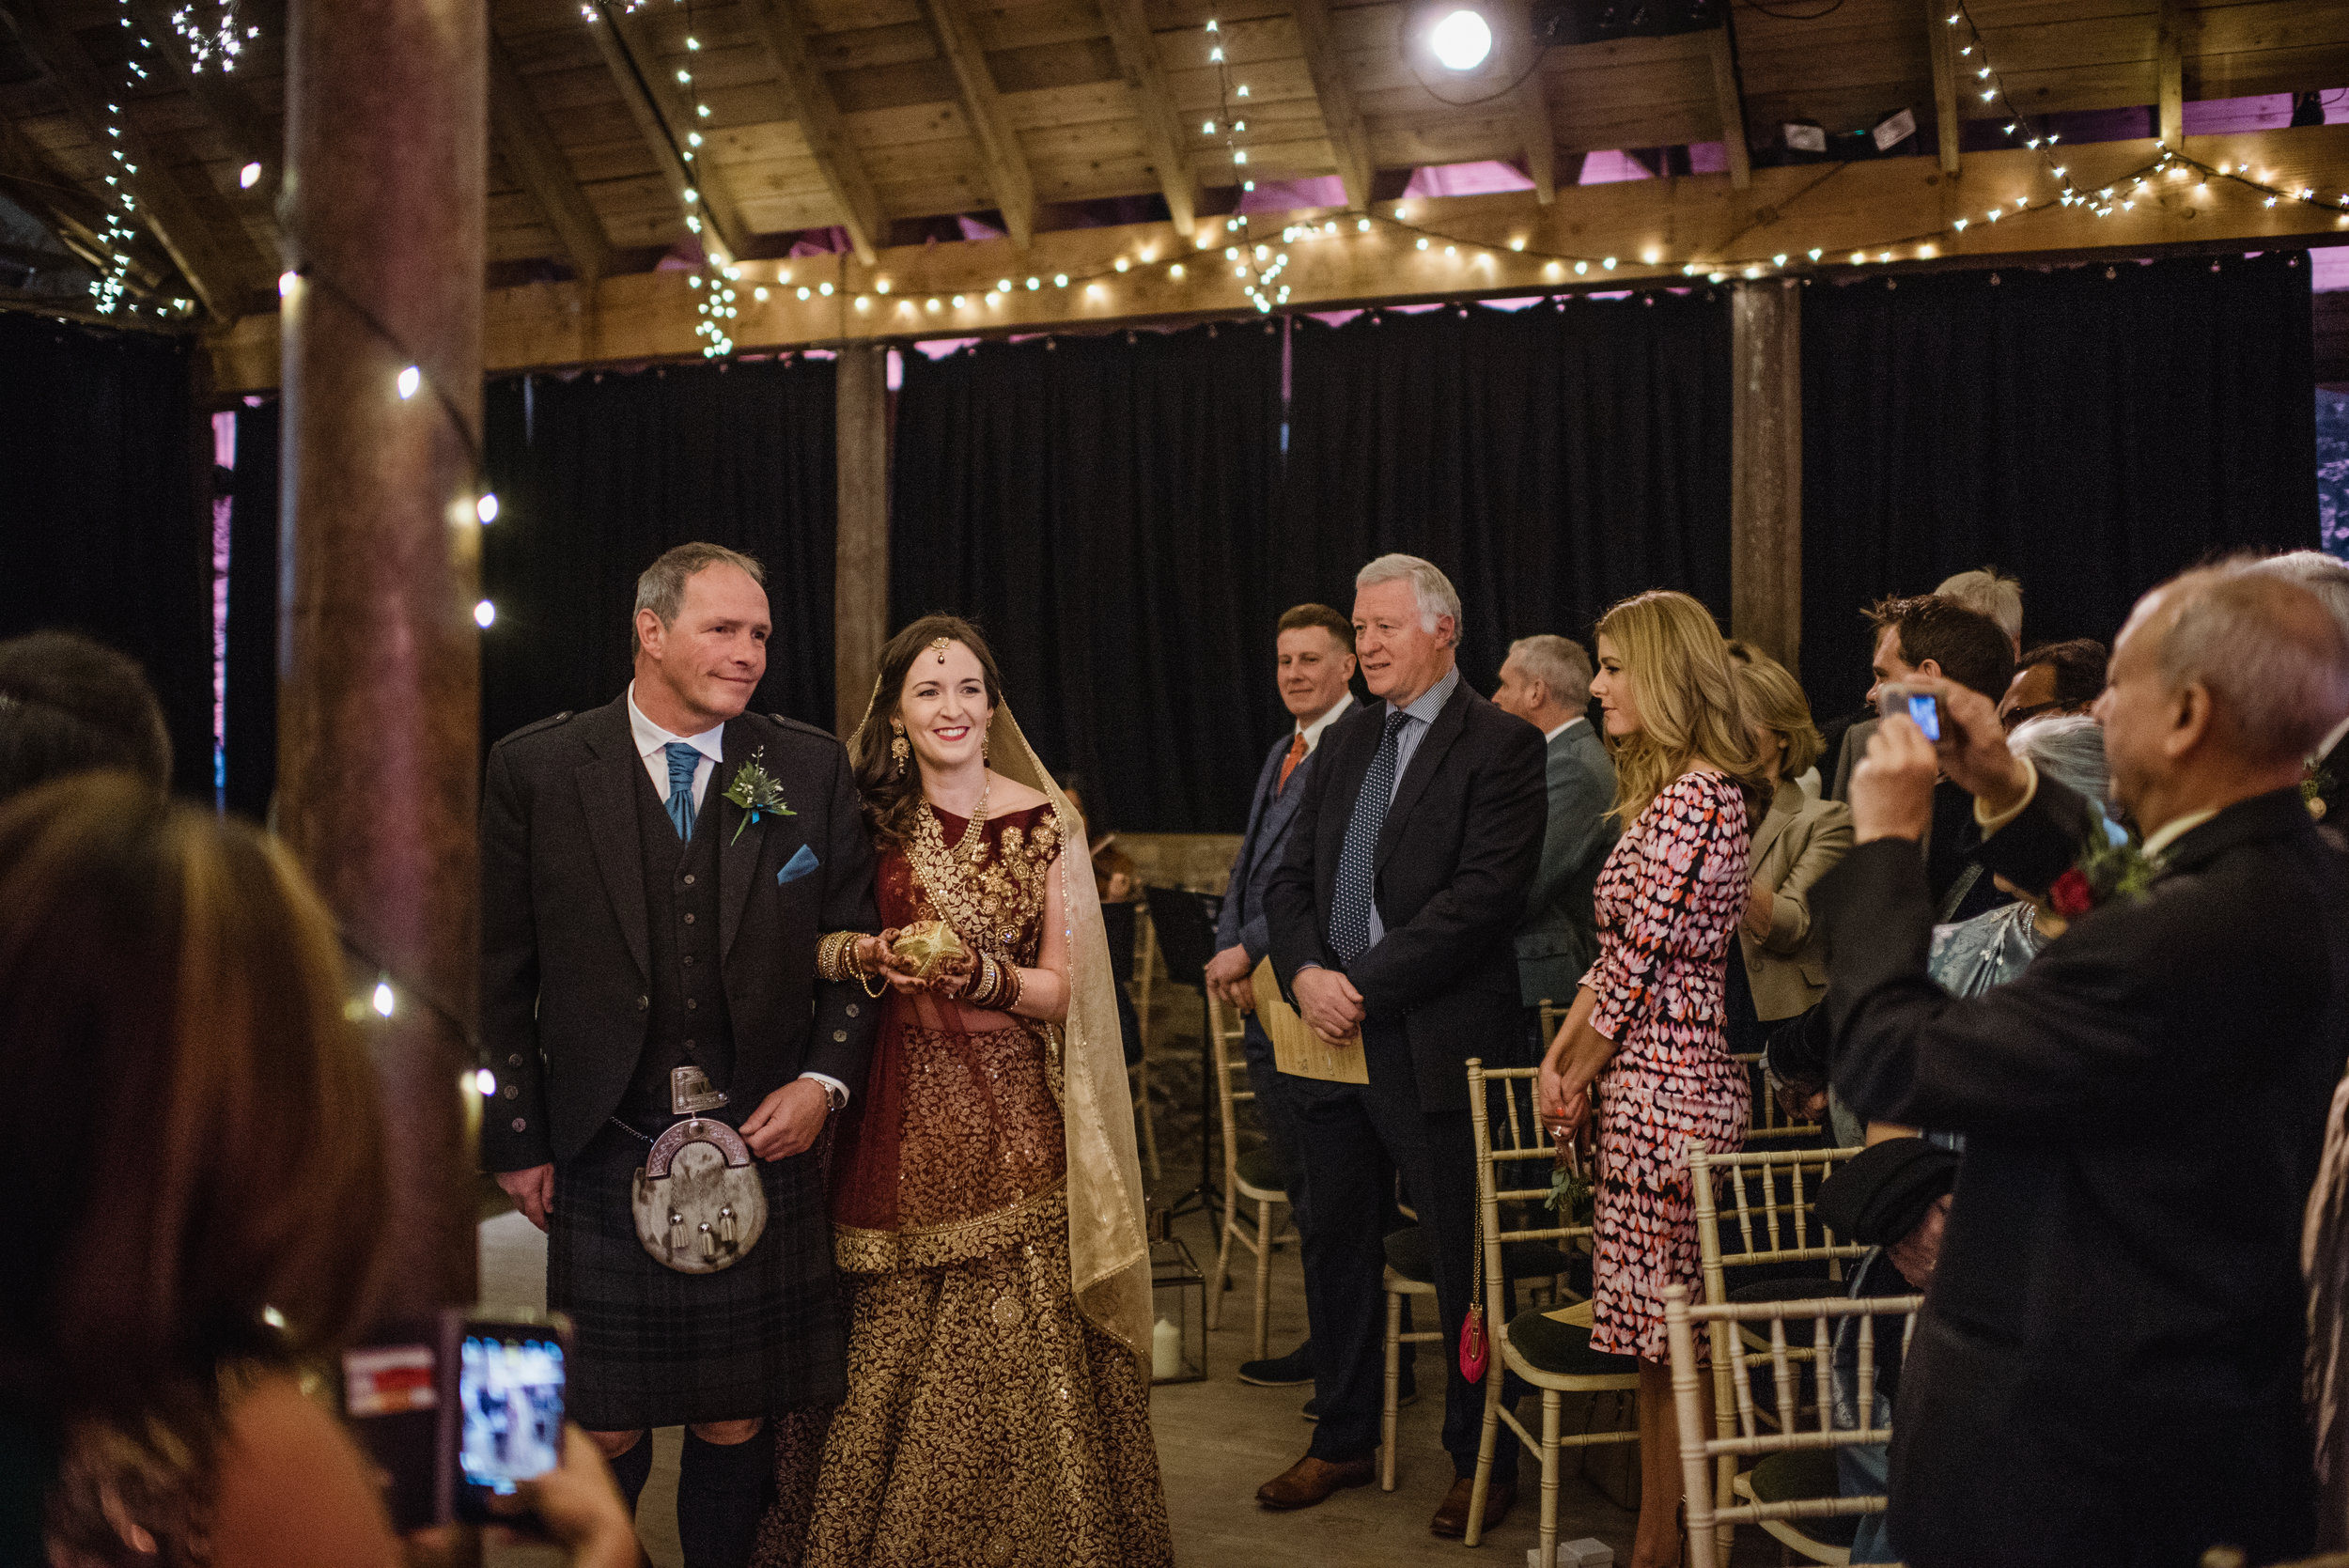 The Byre at Inchyra Wedding313.jpg